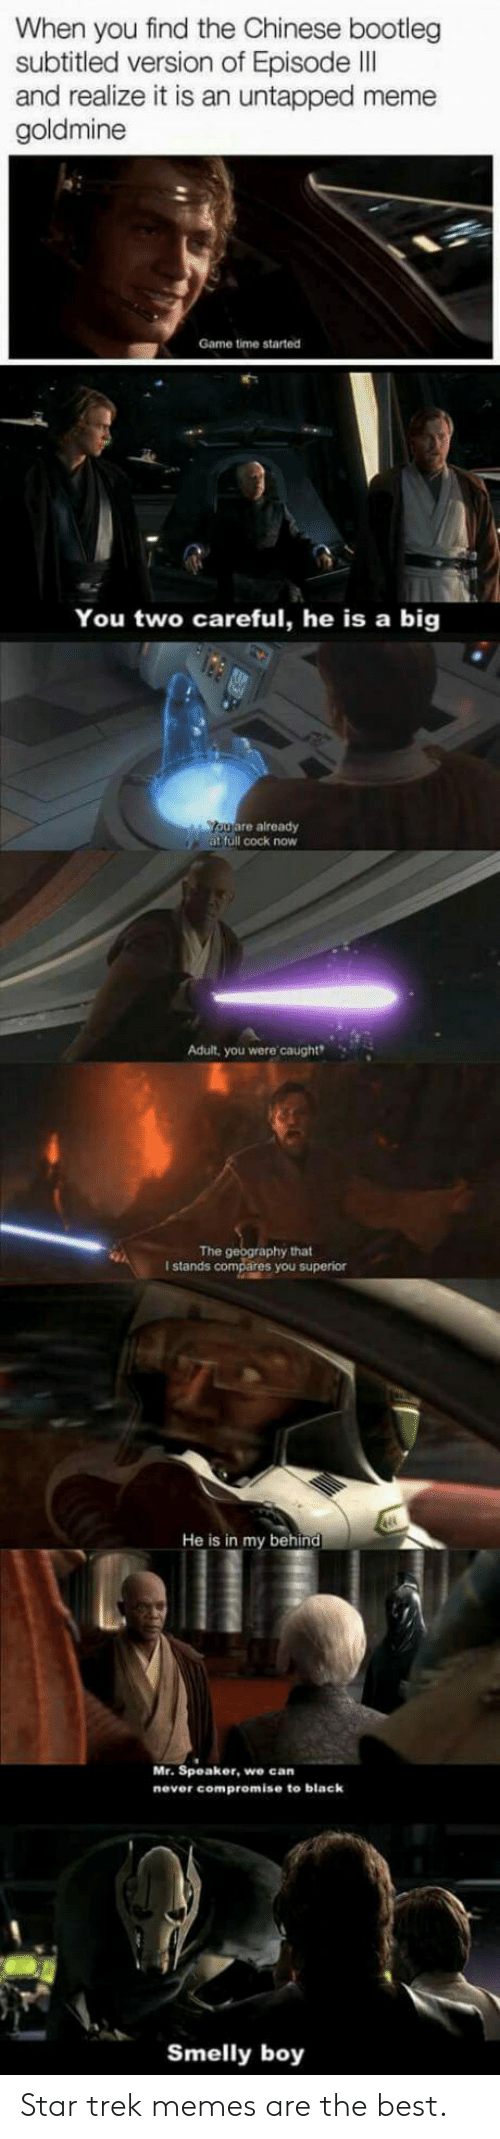 Goldmine: When you find the Chinese bootleg  subtitled version of Episode II  and realize it is an untapped meme  goldmine  Game time started  You two careful, he is a big  uare already  at full cock now  Adult, you were caught  The  hat  I stands  ares you superior  He is in my behind  Mr. Speaker, we can  never compromise to black  Smelly boy Star trek memes are the best.